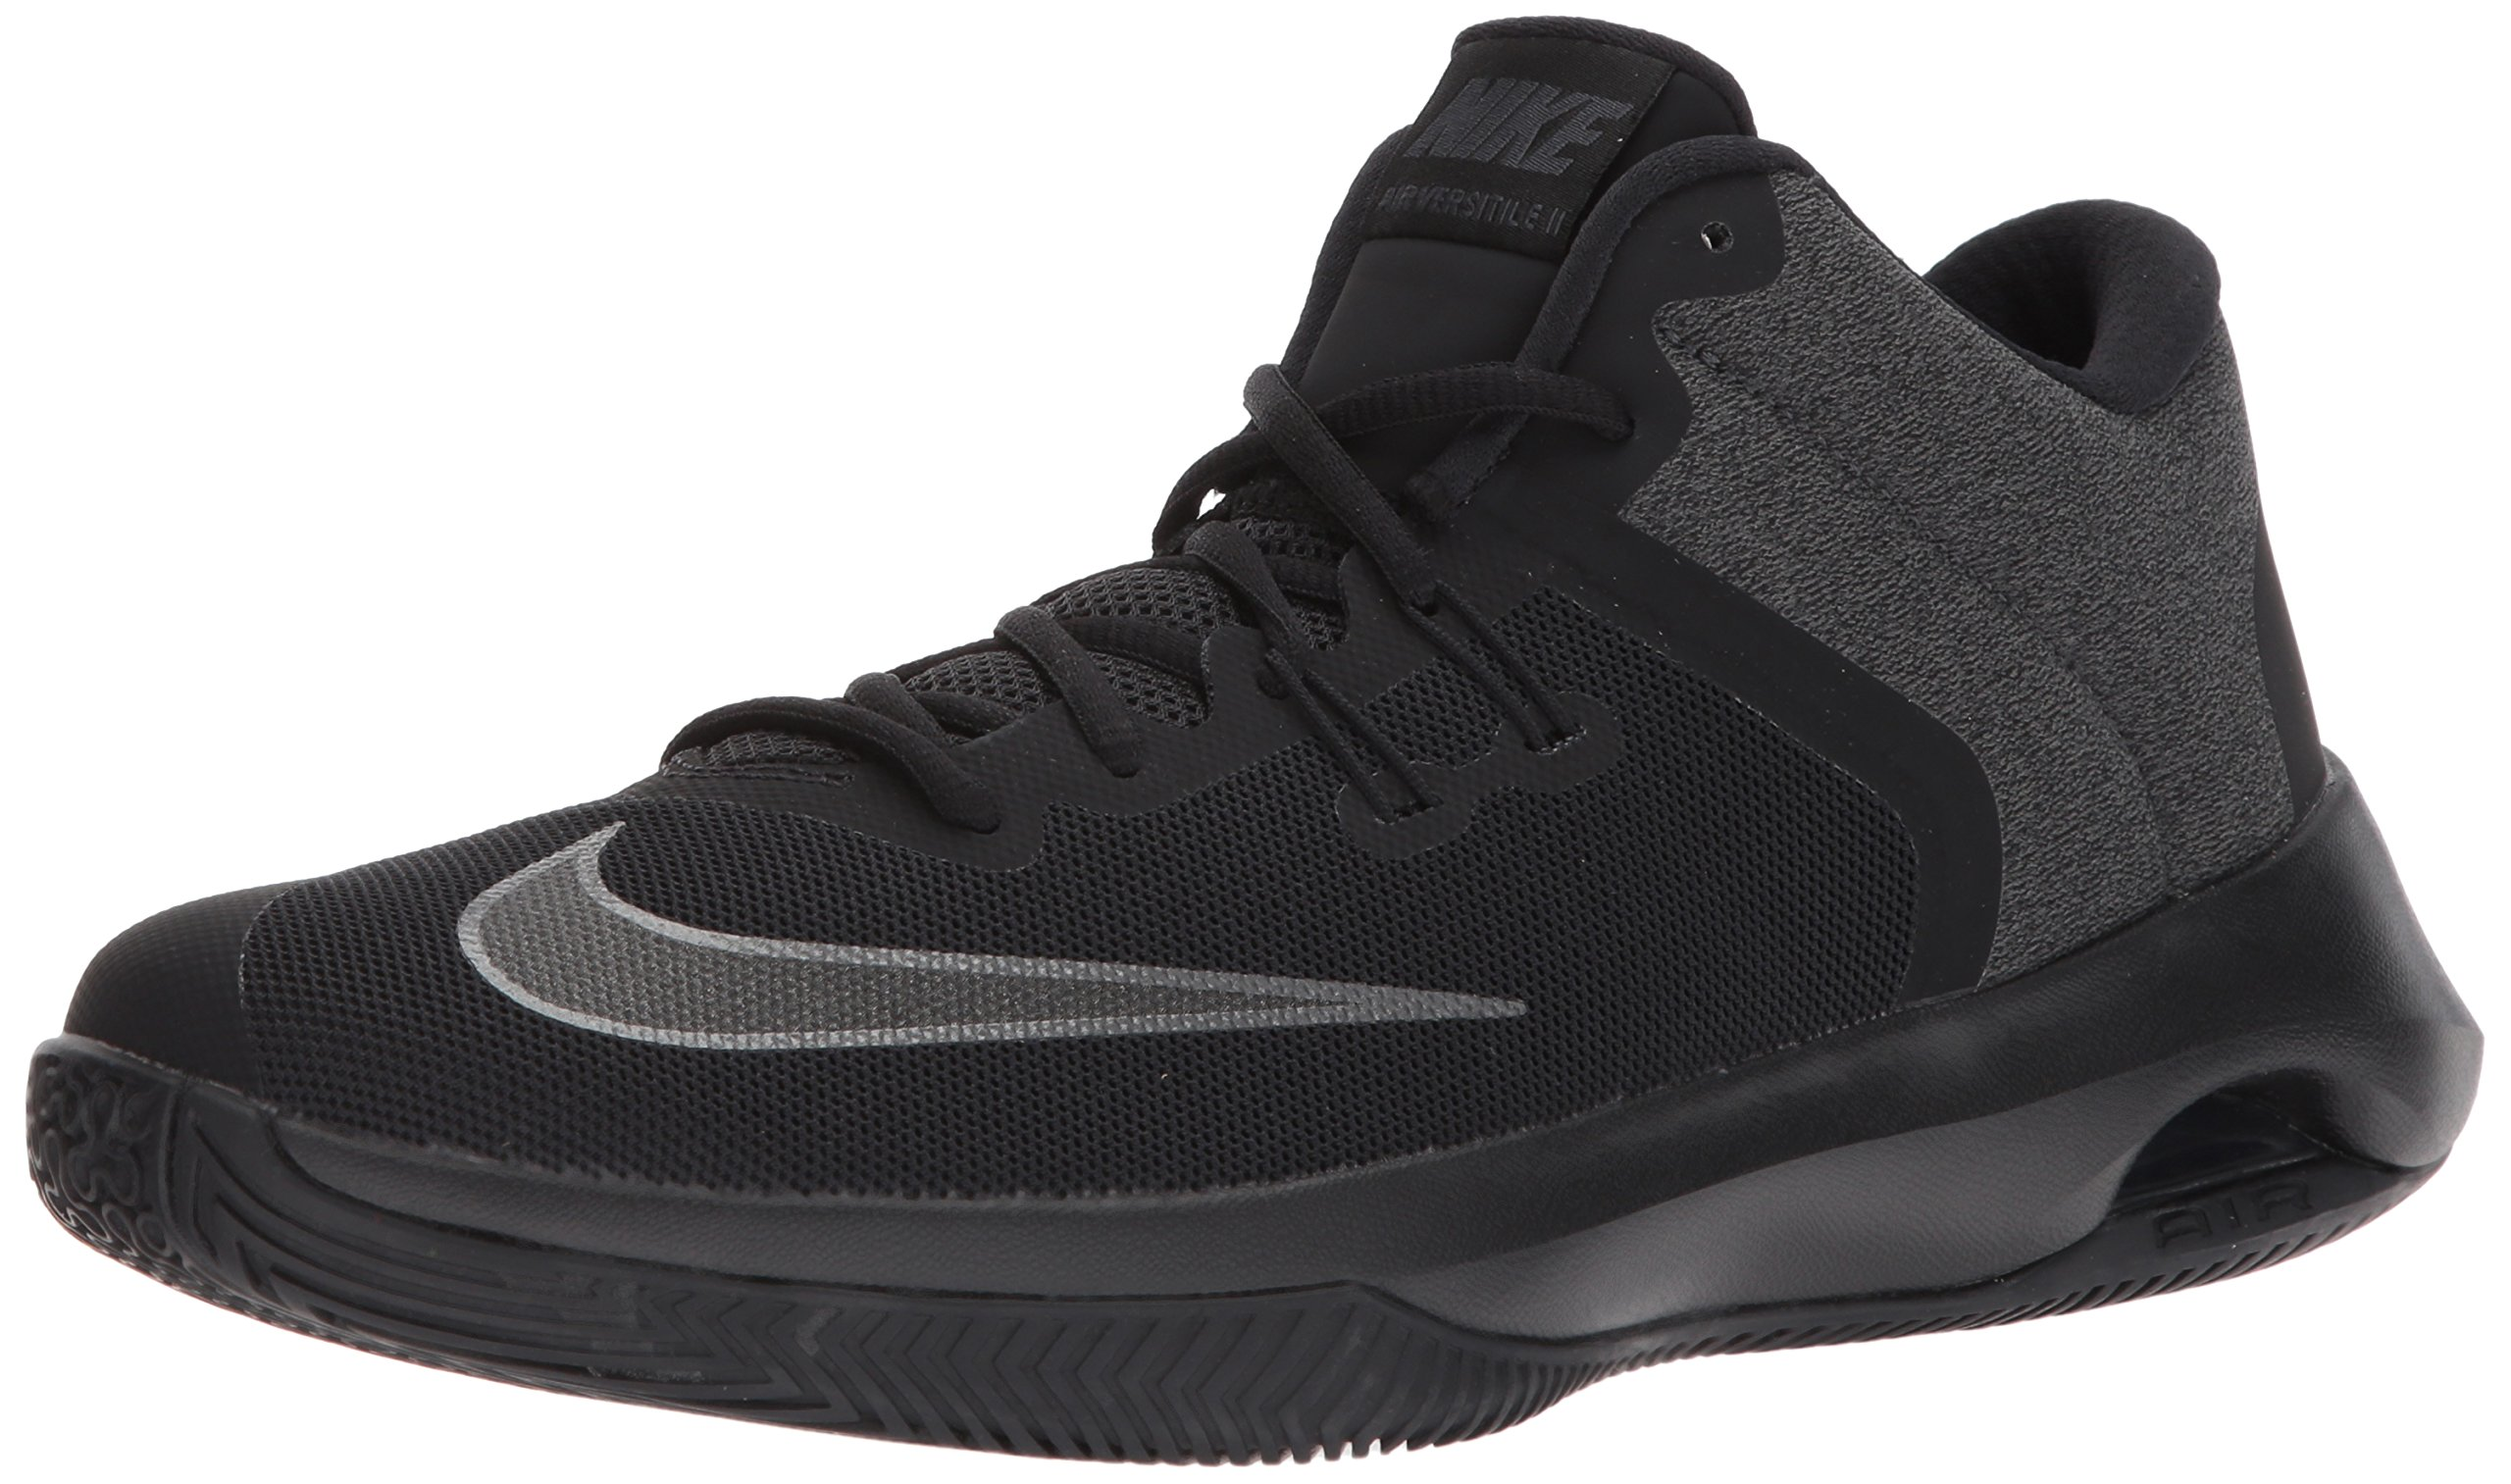 NIKE Men's Air Versitile II NBK Basketball Shoe, Black/Metallic Dark Grey-Anthracite, 12.0 Regular US